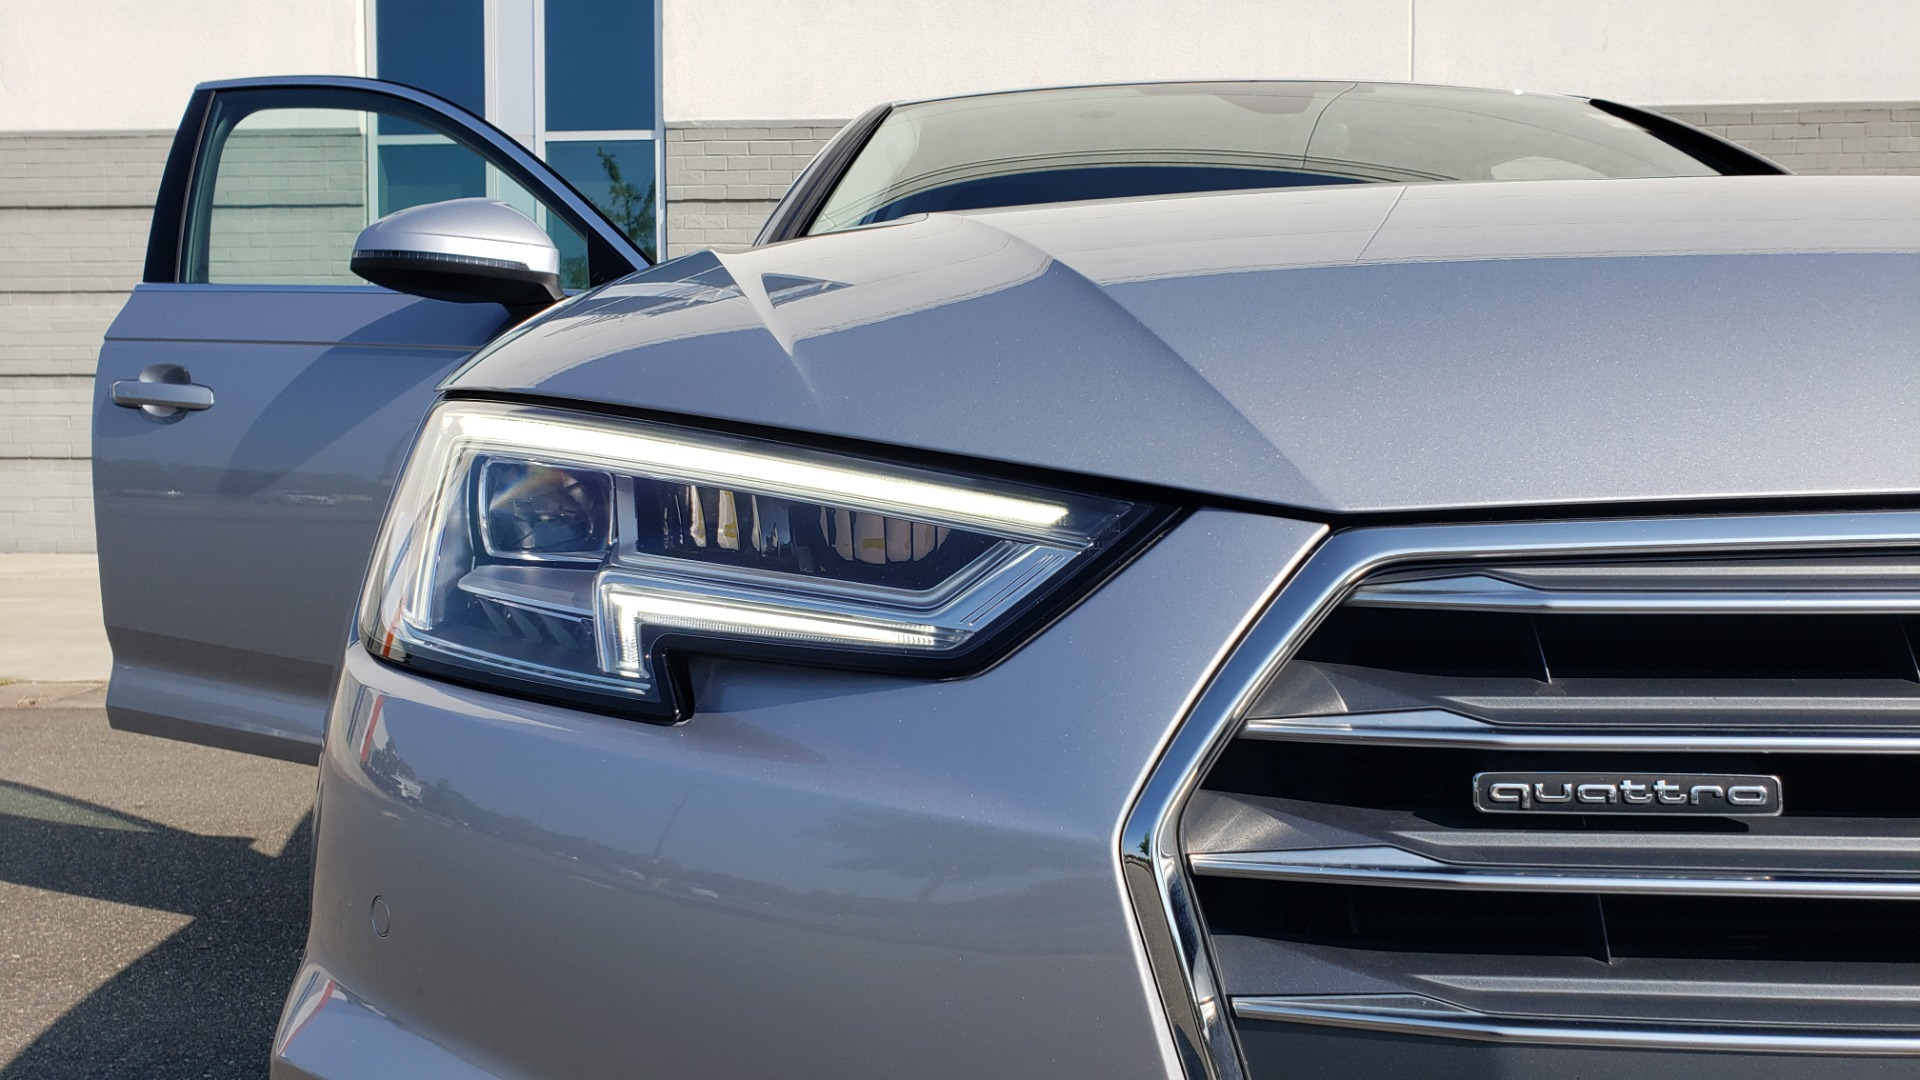 Used 2018 Audi A4 PREMIUM PLUS 2.0T / NAV / SUNROOF / B&O SND / CLD WTHR / REARVIEW for sale $29,395 at Formula Imports in Charlotte NC 28227 23